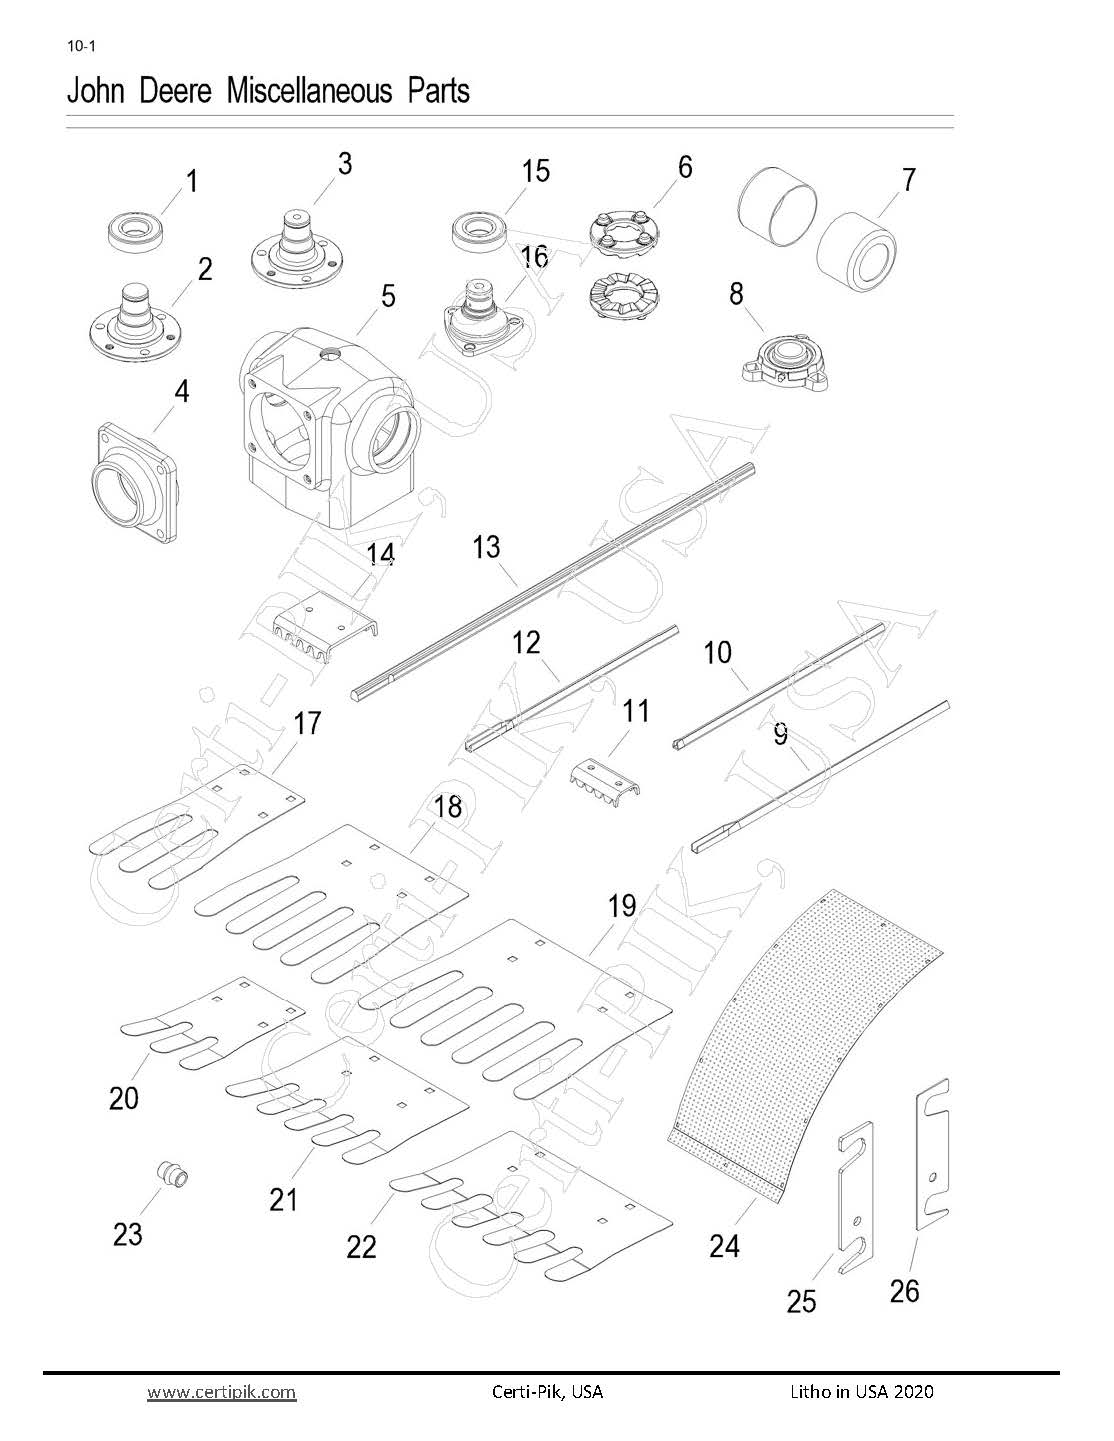 John Deere Miscellaneous Parts